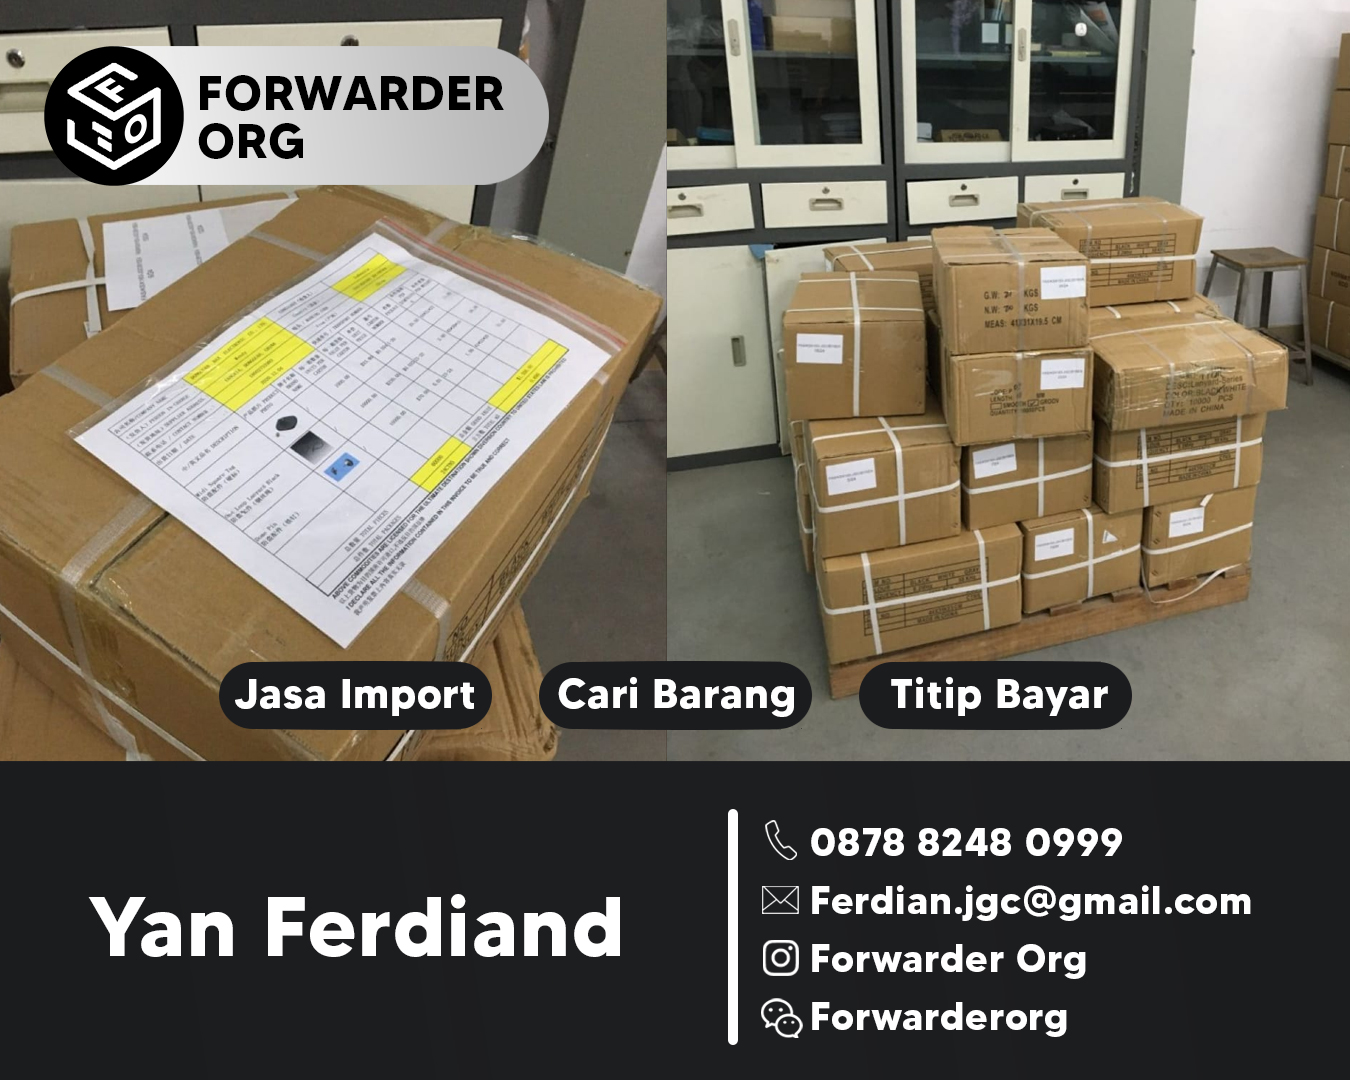 Jasa Import Walk Through Metal Detector | FORWARDER ORG